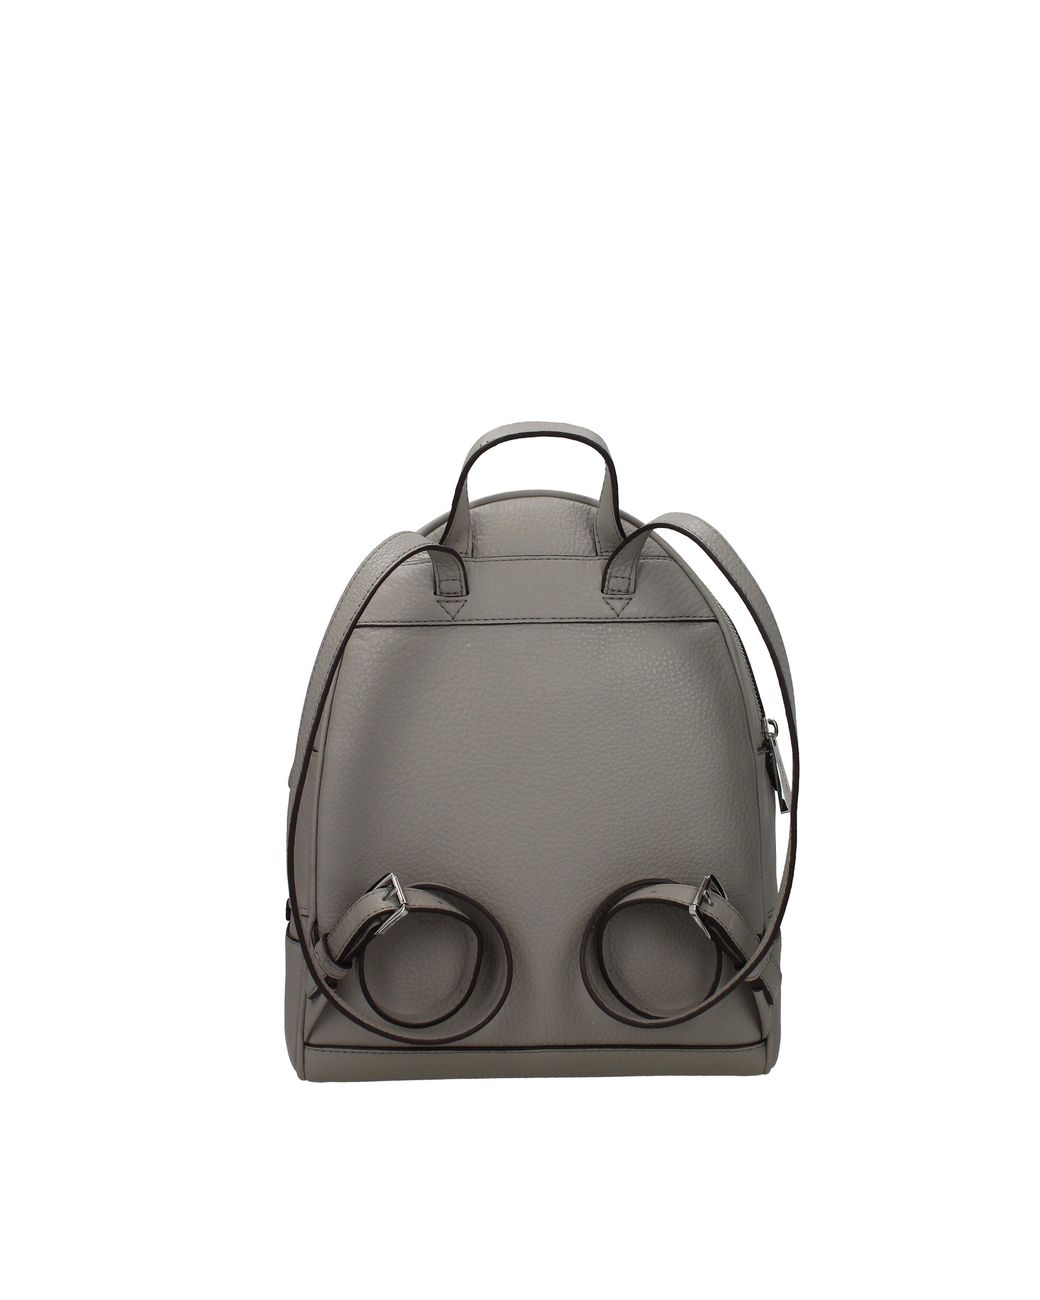 d025b084c739 Lyst - Michael Kors Backpacks And Bumbags Rhea Zip Md Women Gray in Gray